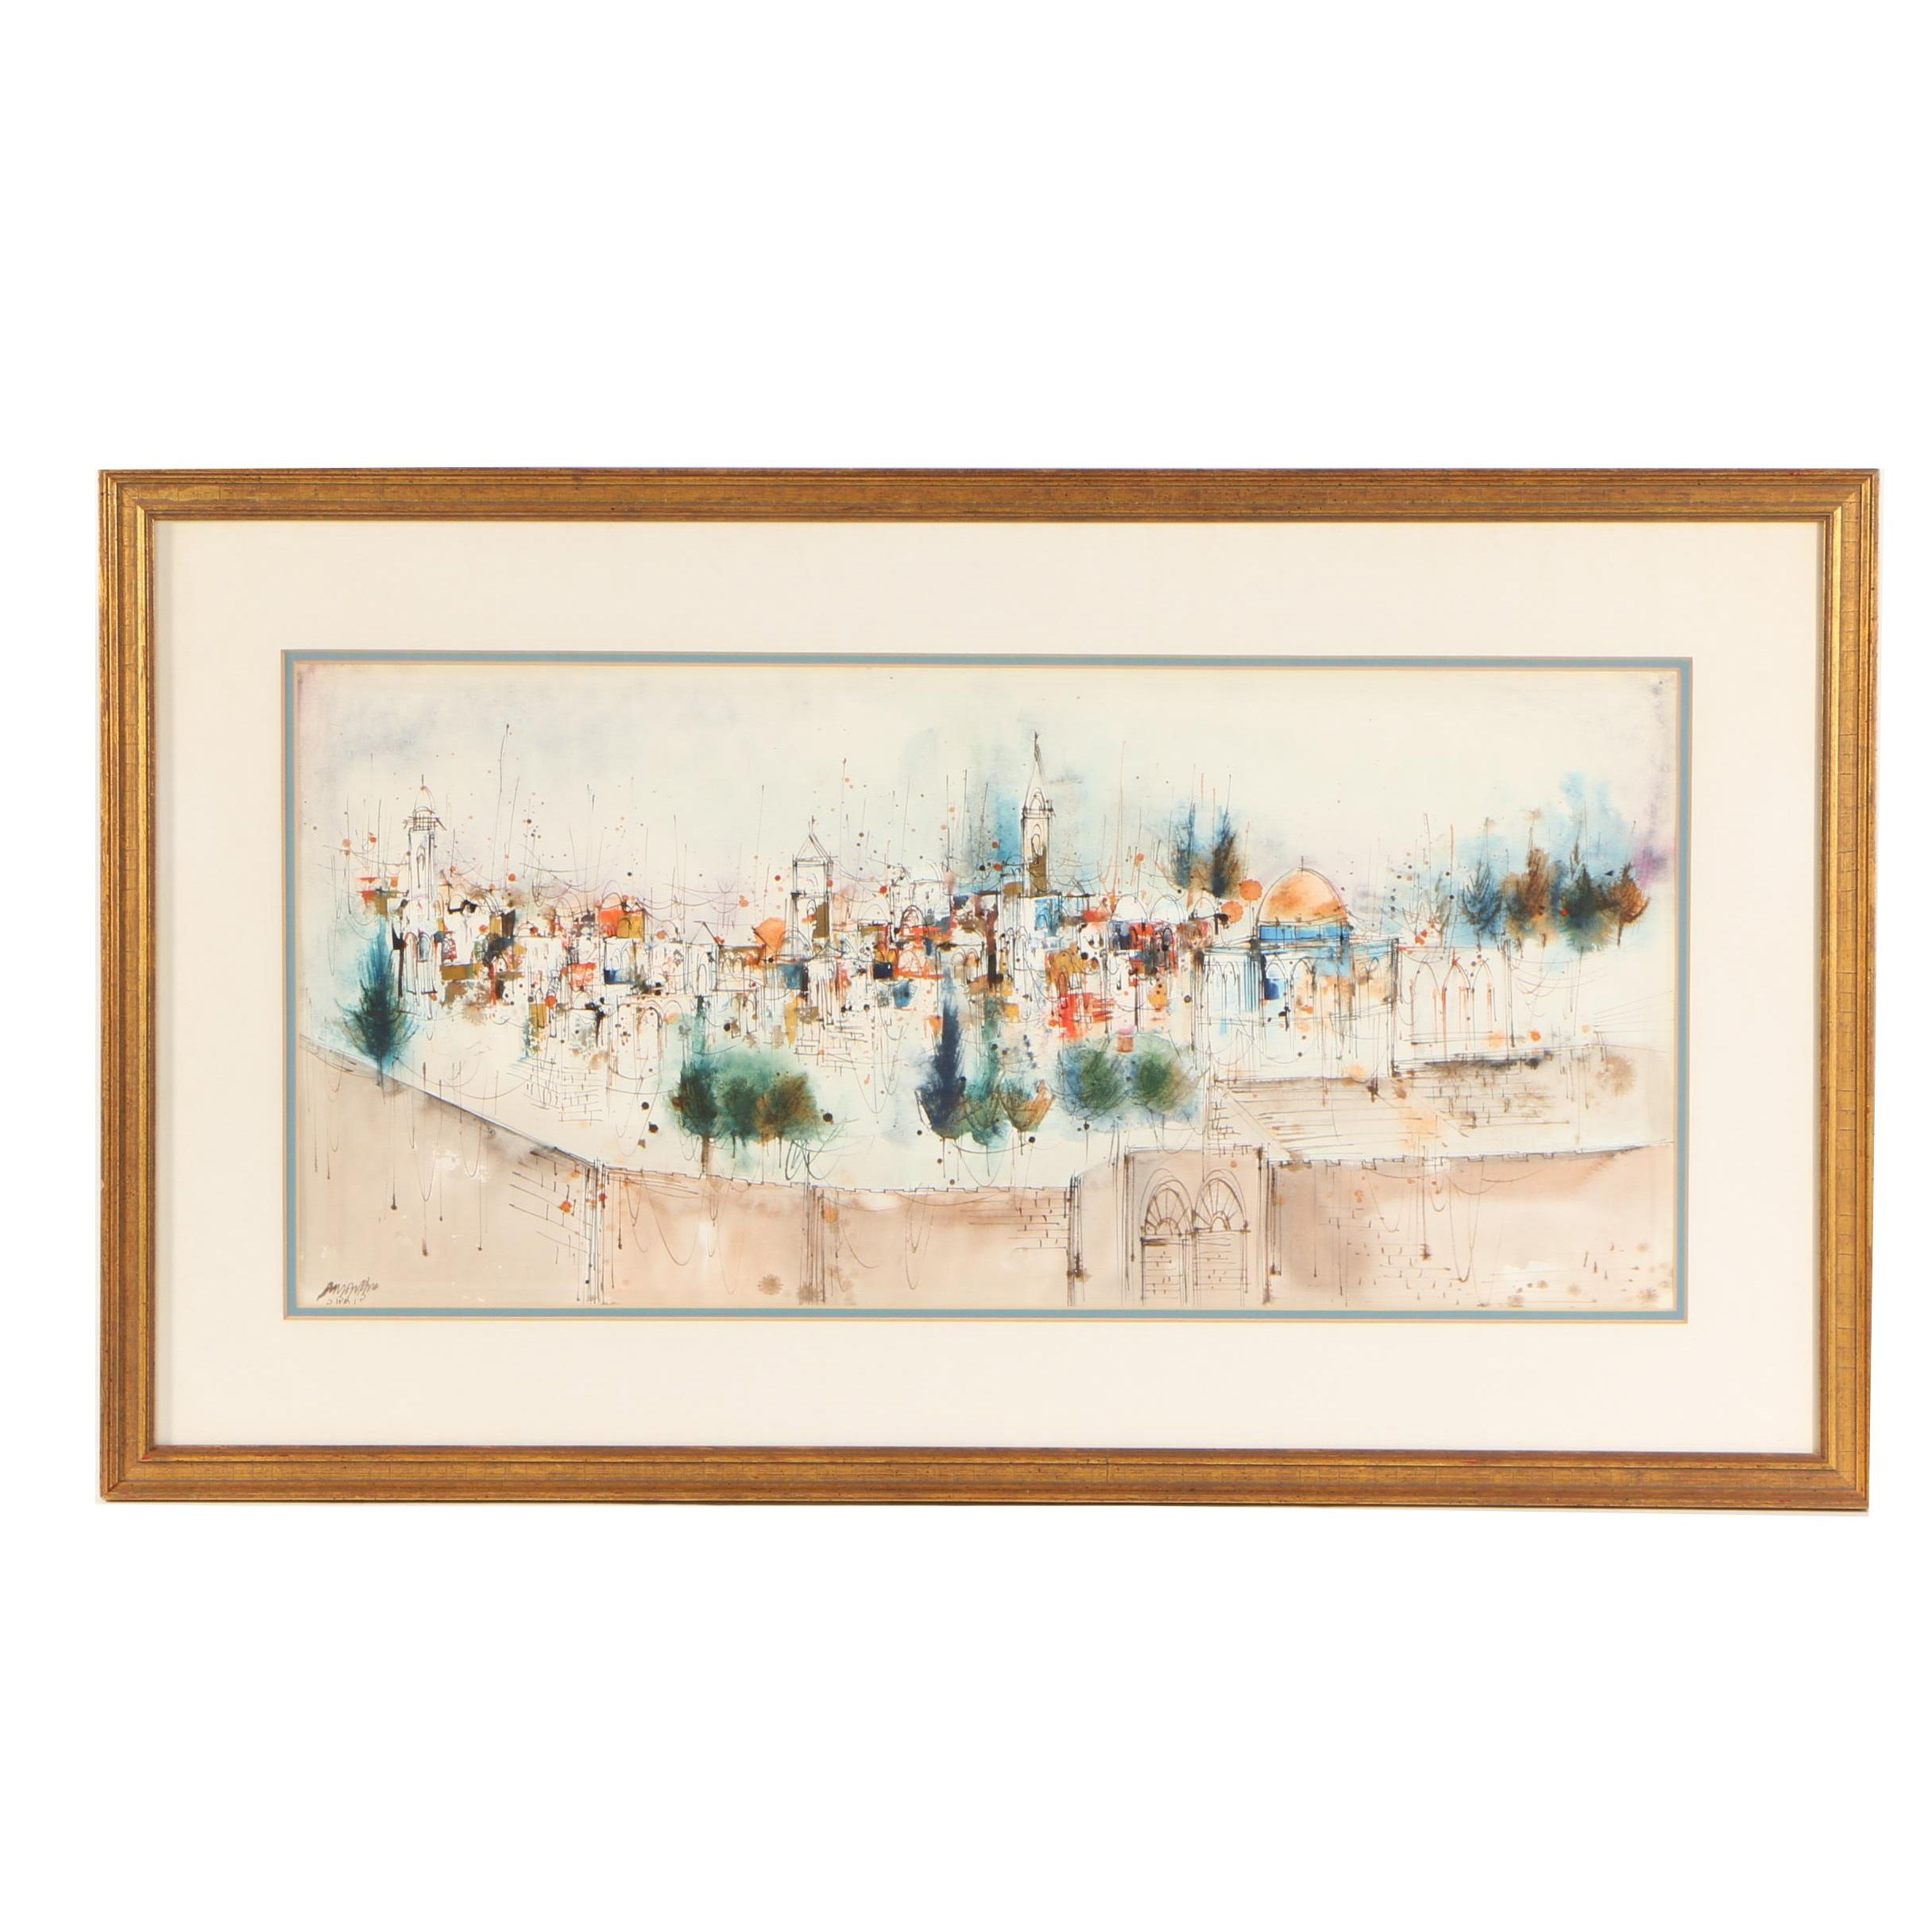 "Edward Ben Avram Watercolor Painting ""View of Jerusalem"""